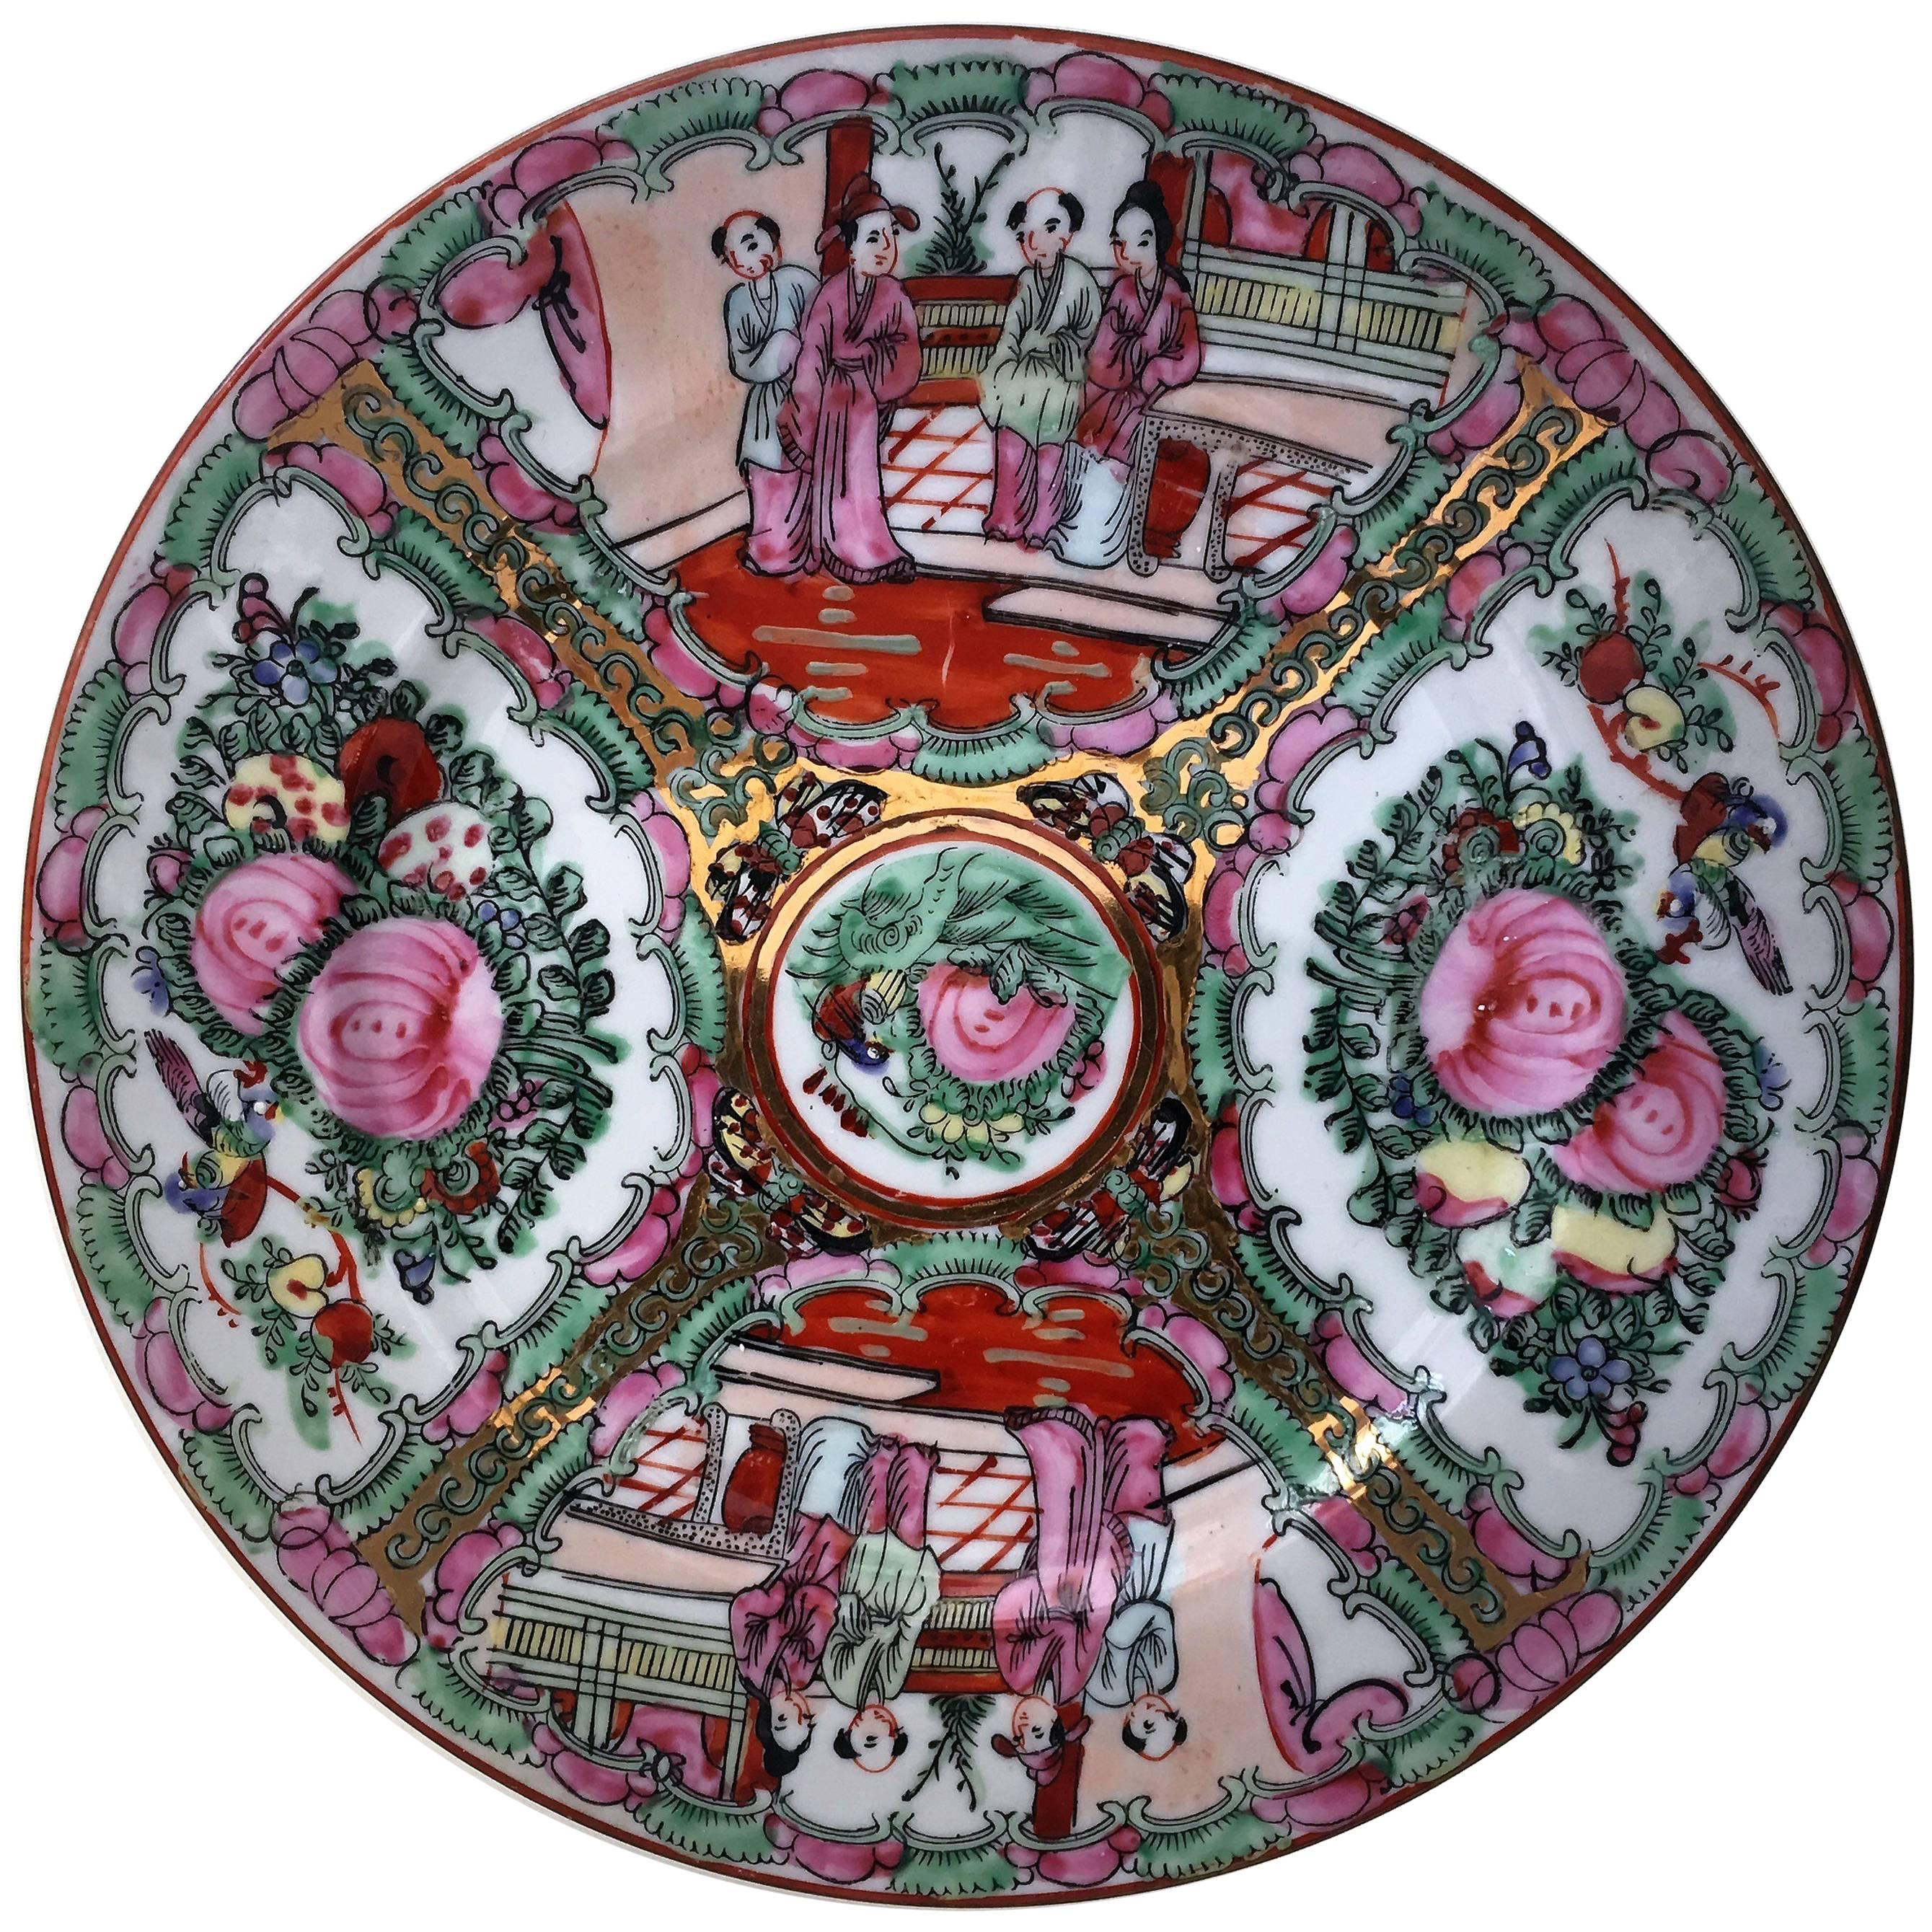 20th Century, Chinese Porcelain Plates